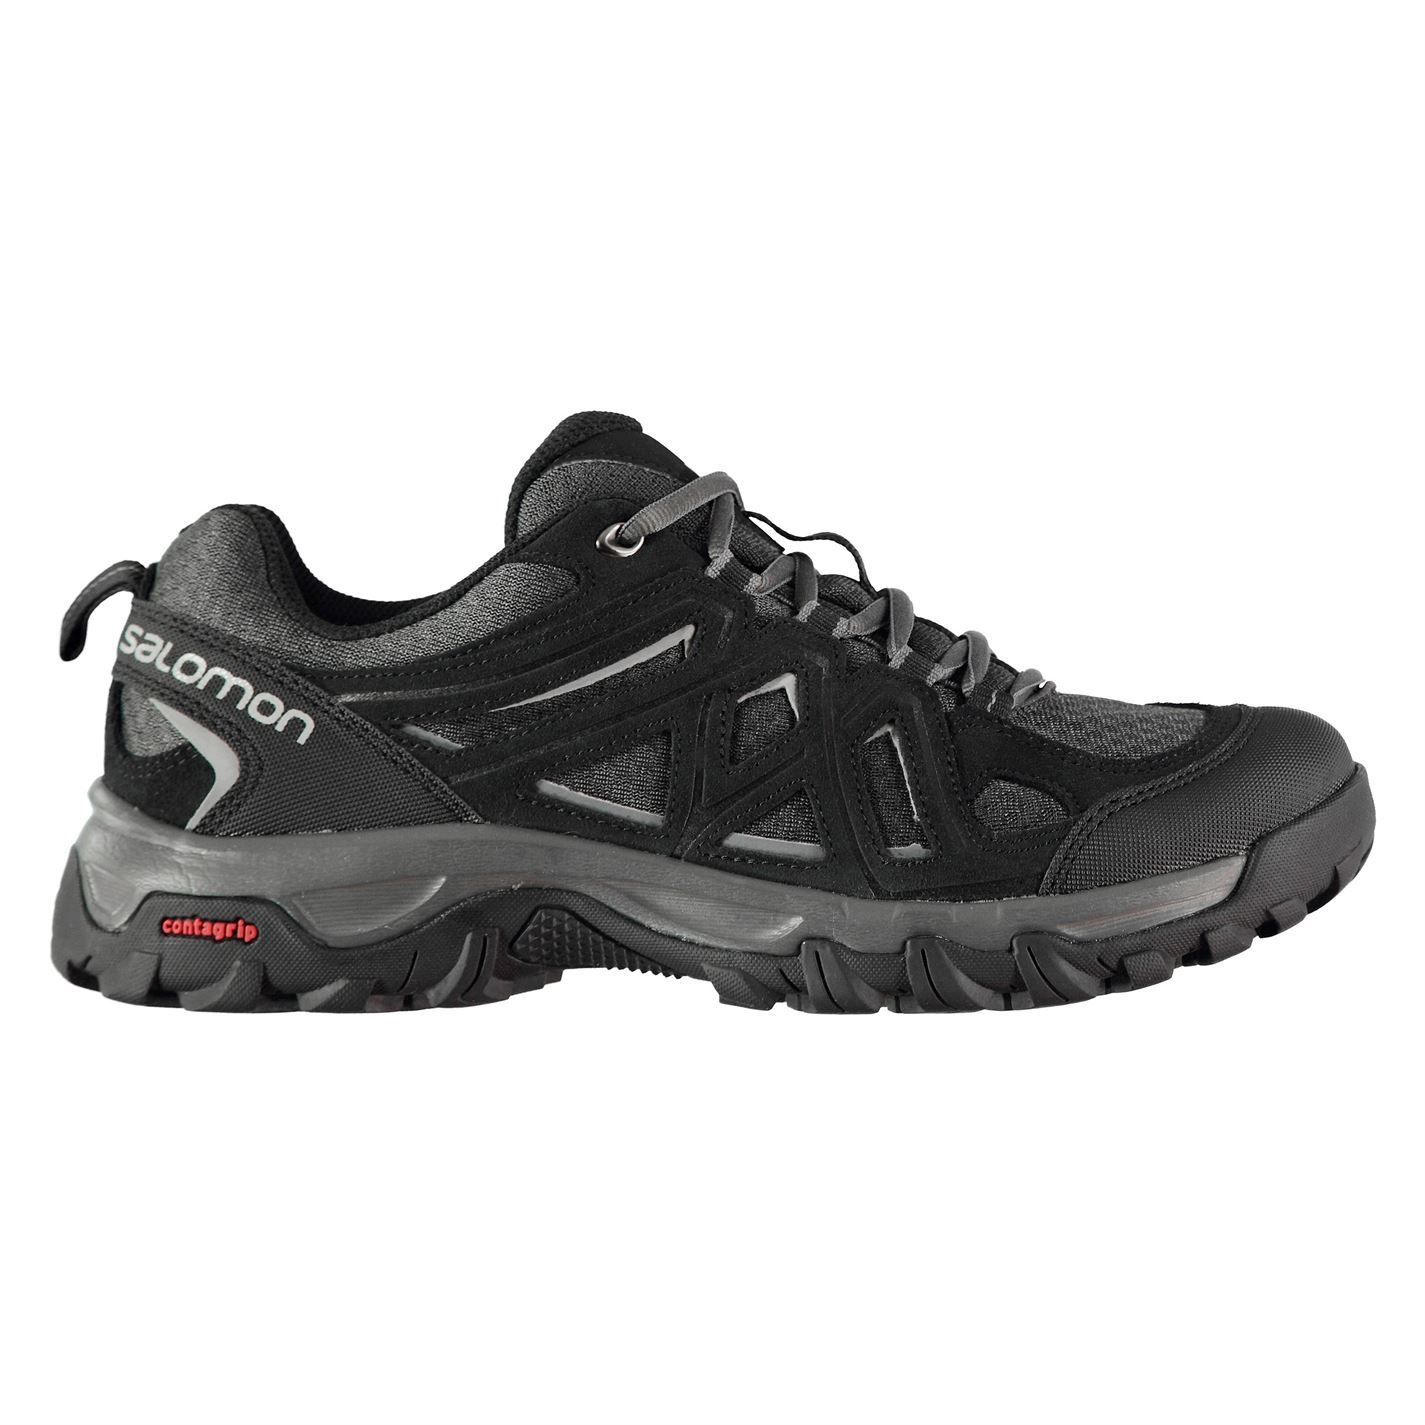 Details about Salomon Evasion 2 Aero Walking Shoes Mens Black Hiking Footwear Boots